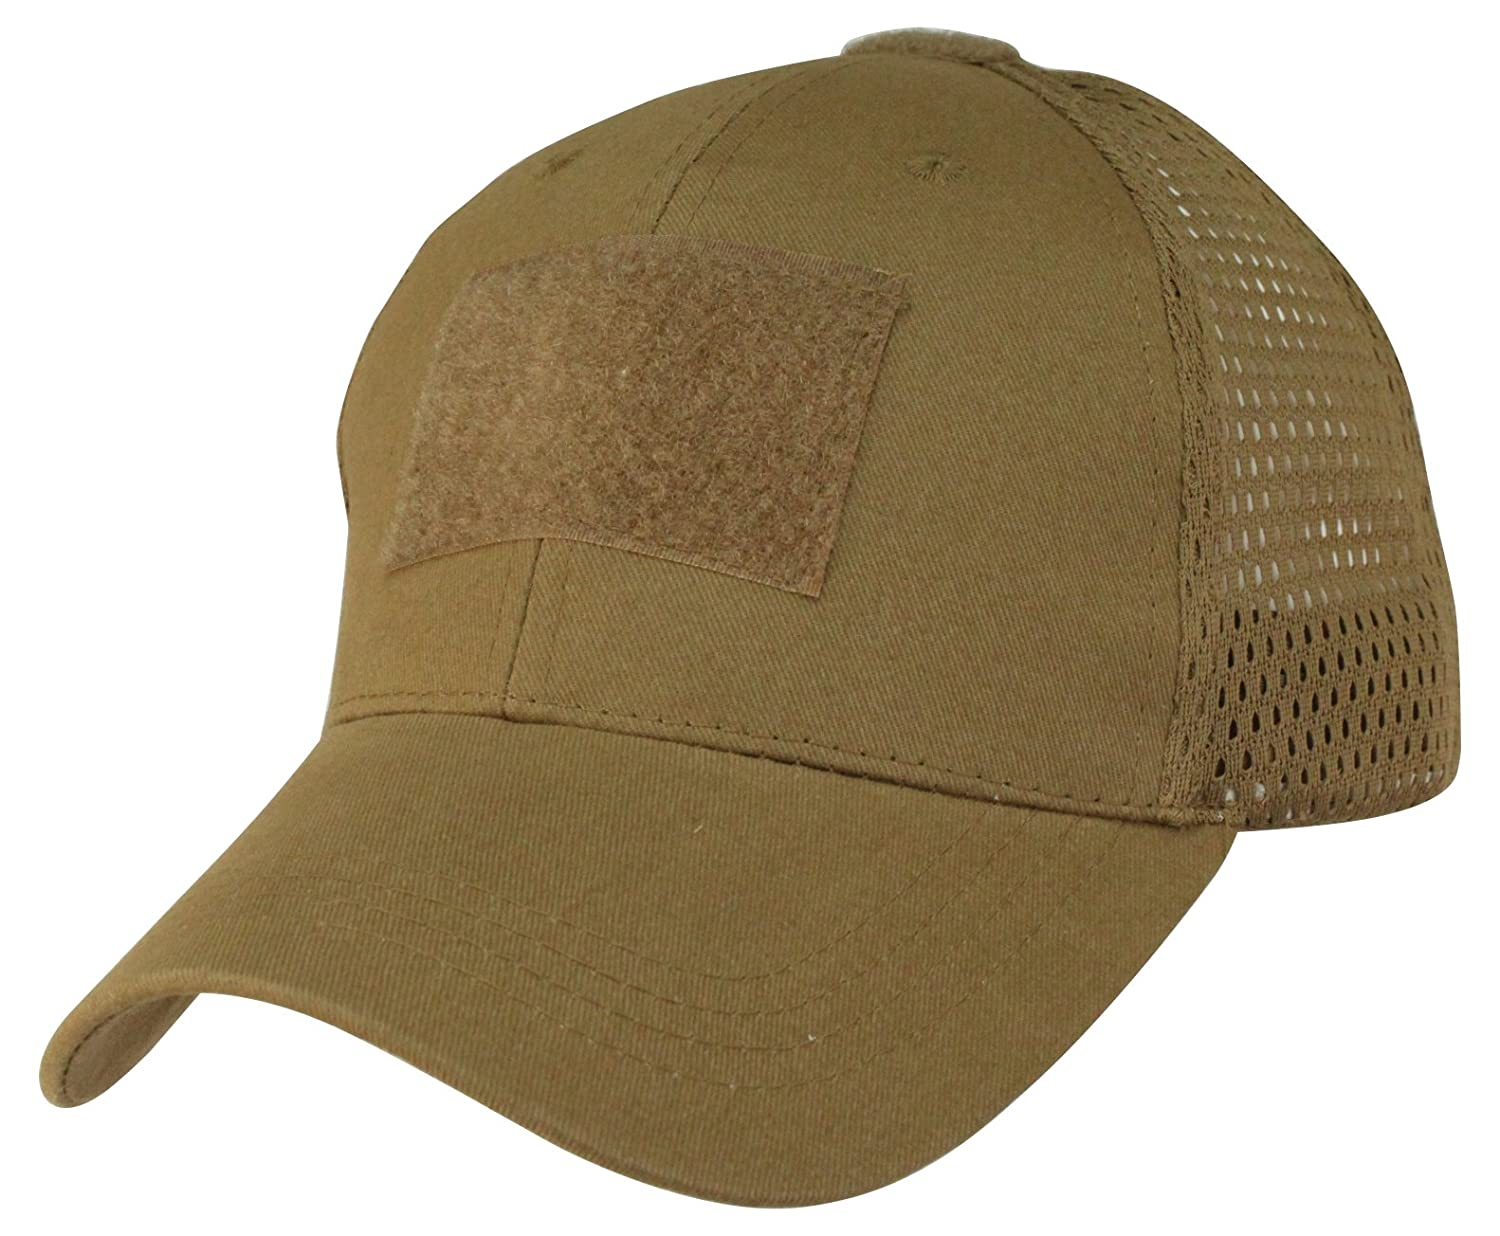 b52bbbba9a3 Amazon.com  Eagle Crest Mesh Back Coyote Brown Operator Cap  Clothing